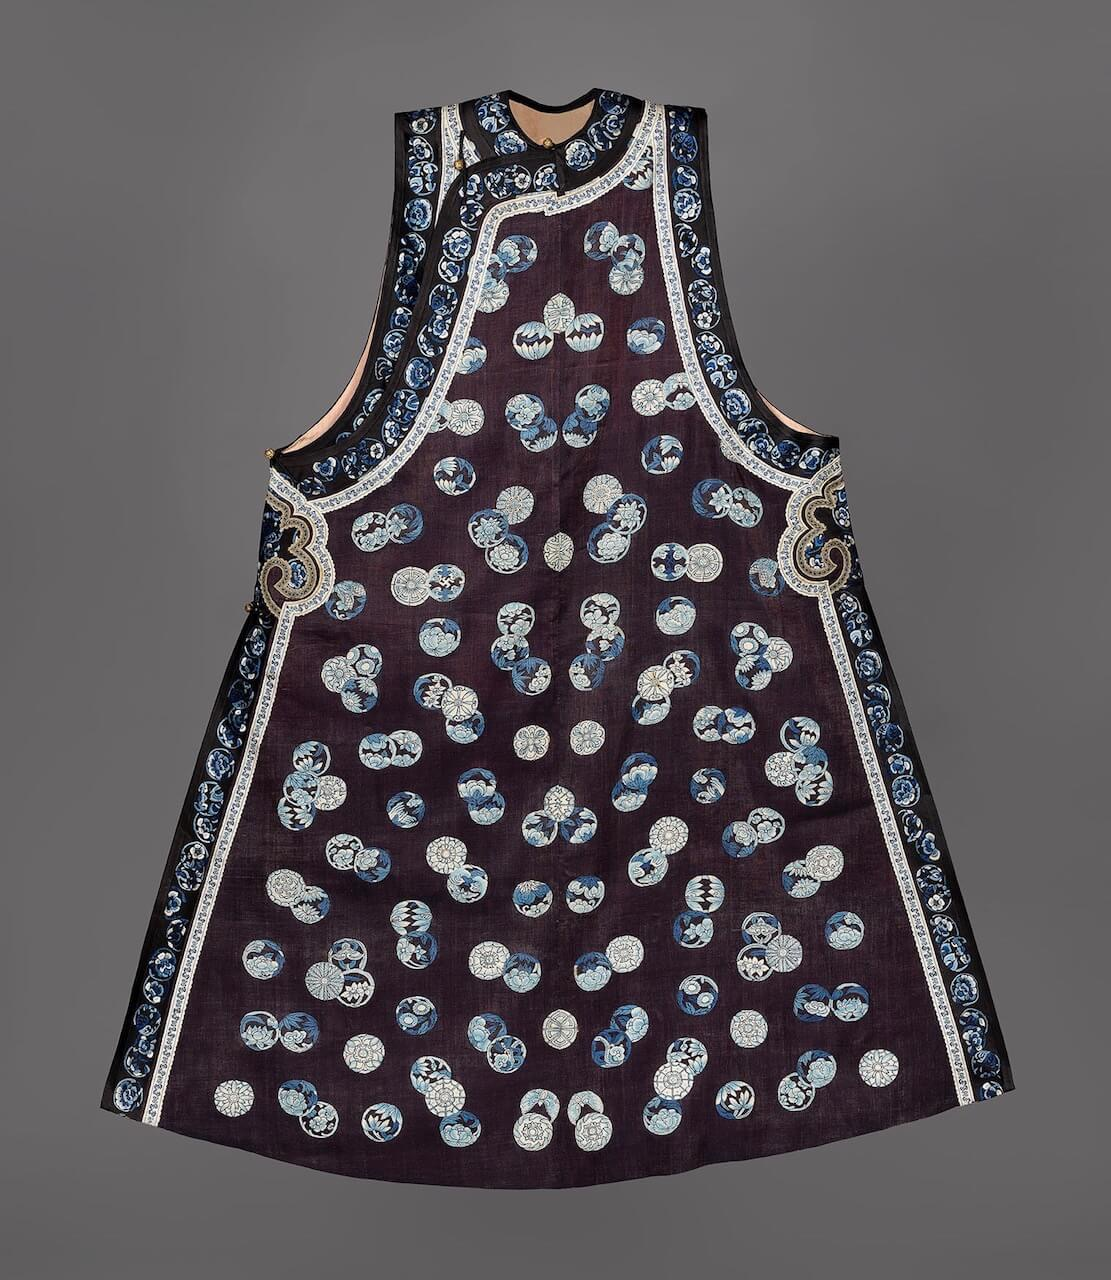 A sleeveless court vest for a lady